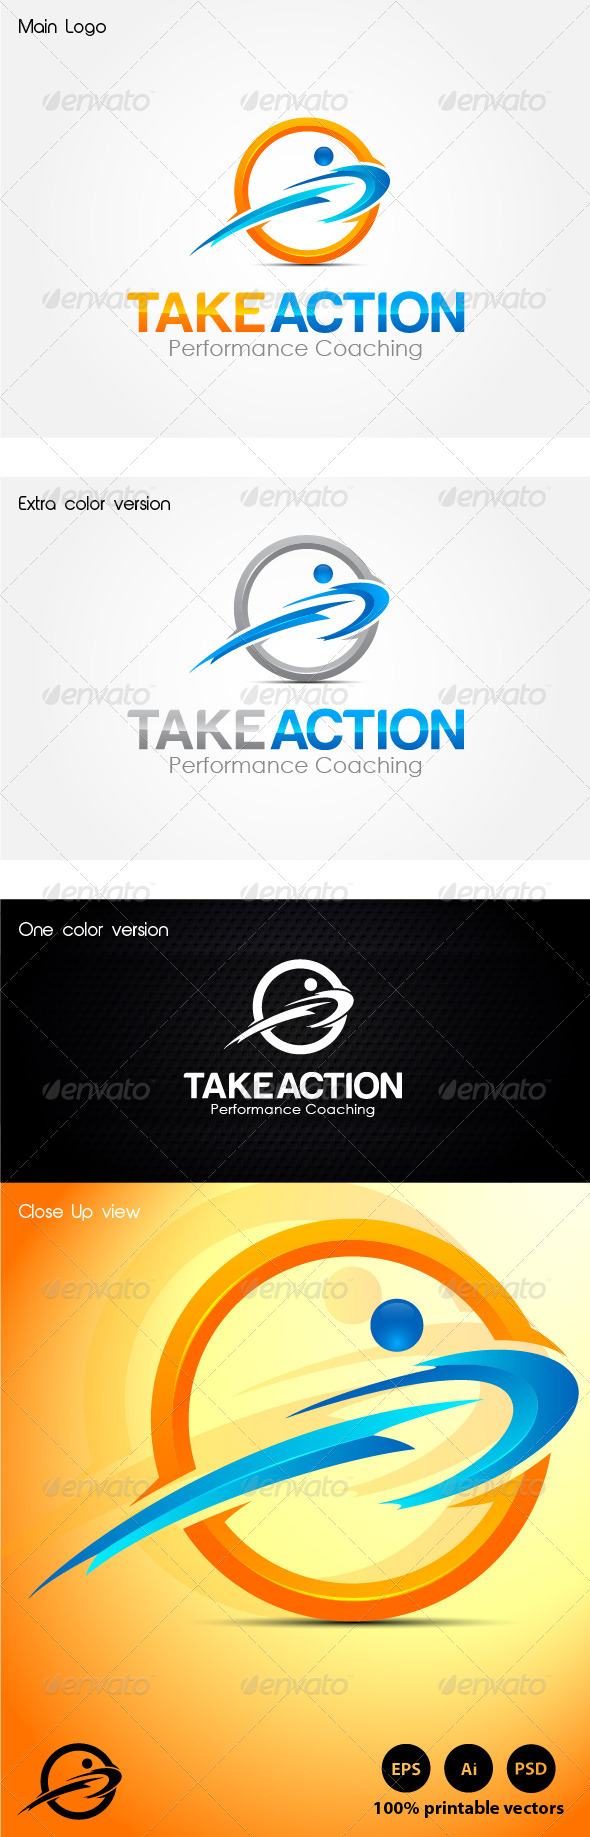 Take Action Coaching - Humans Logo Templates